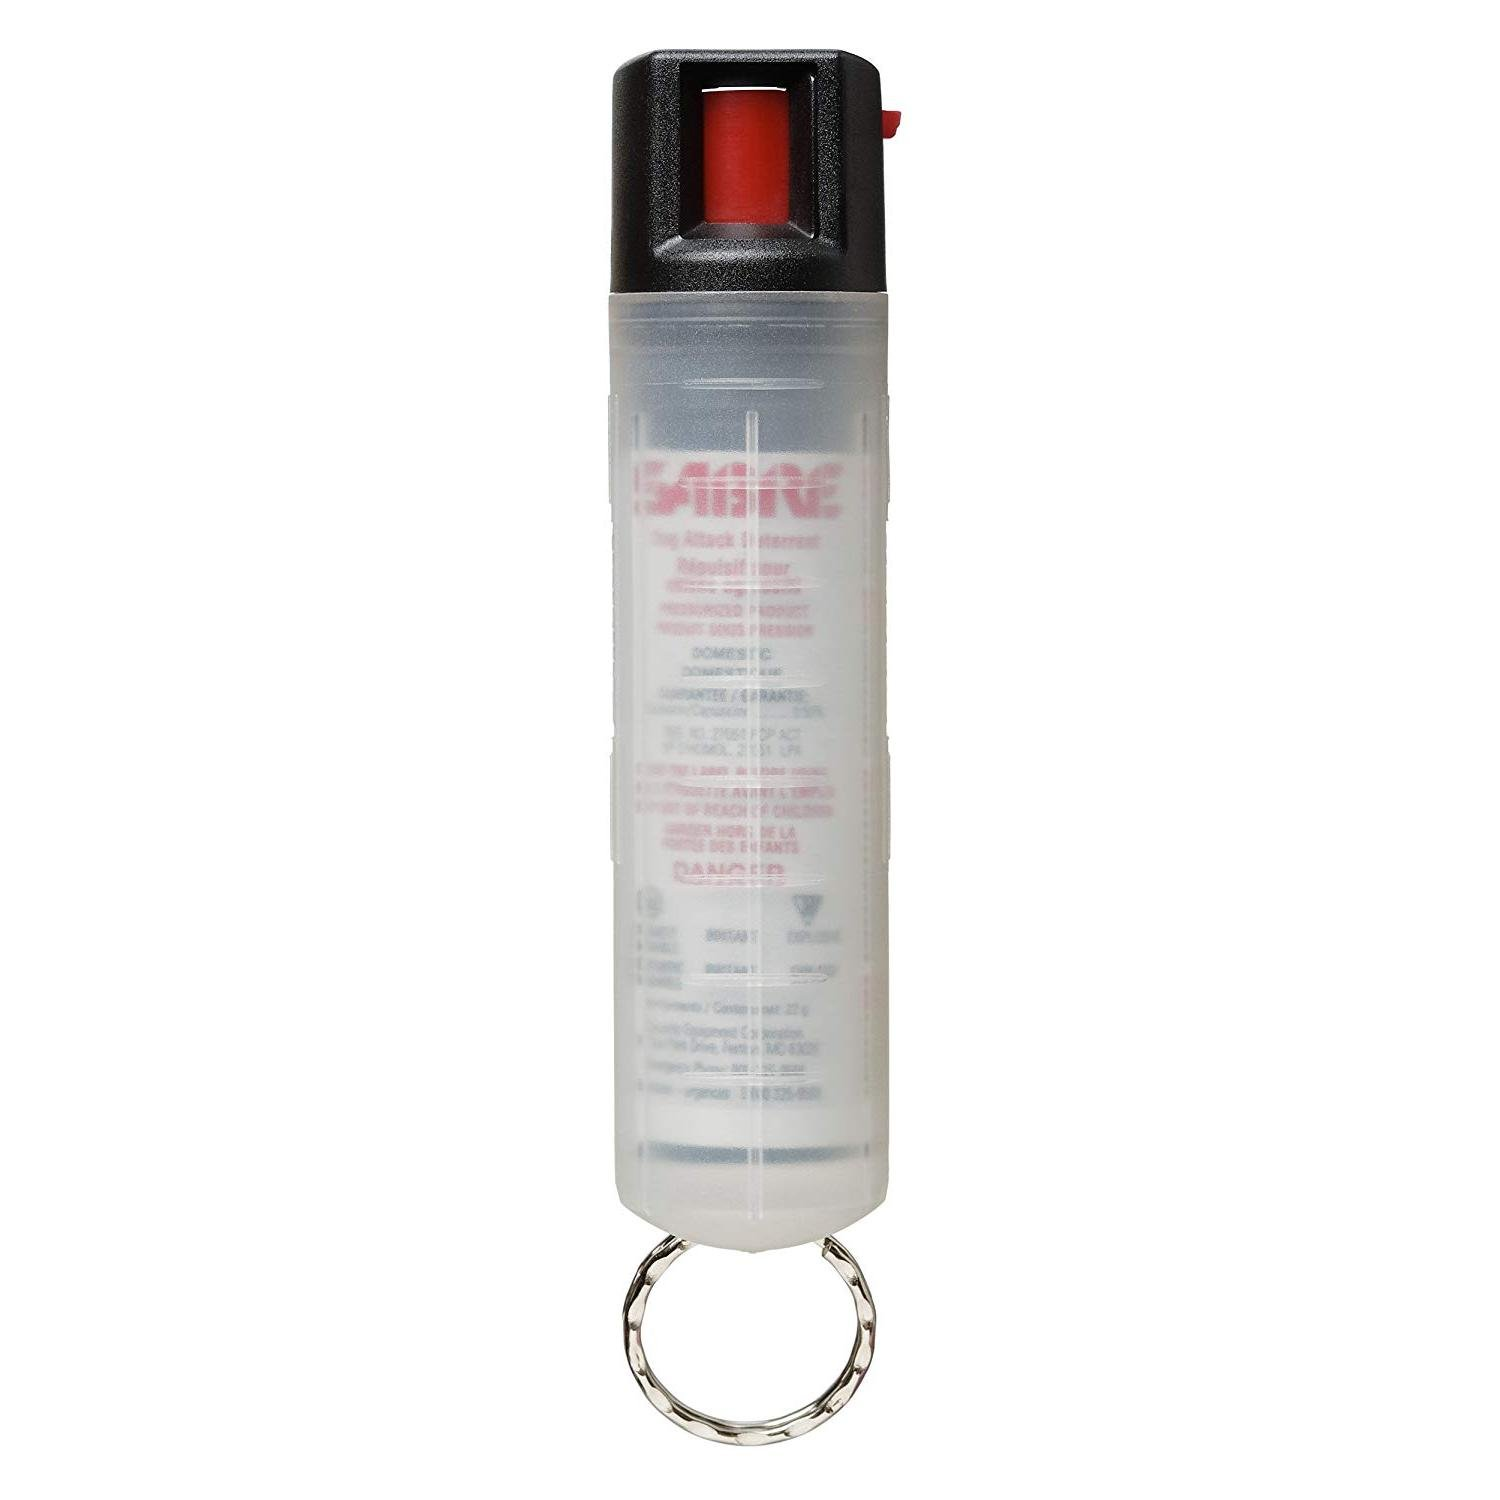 Sabre Pepper Spray, Dog Attack Deterrent